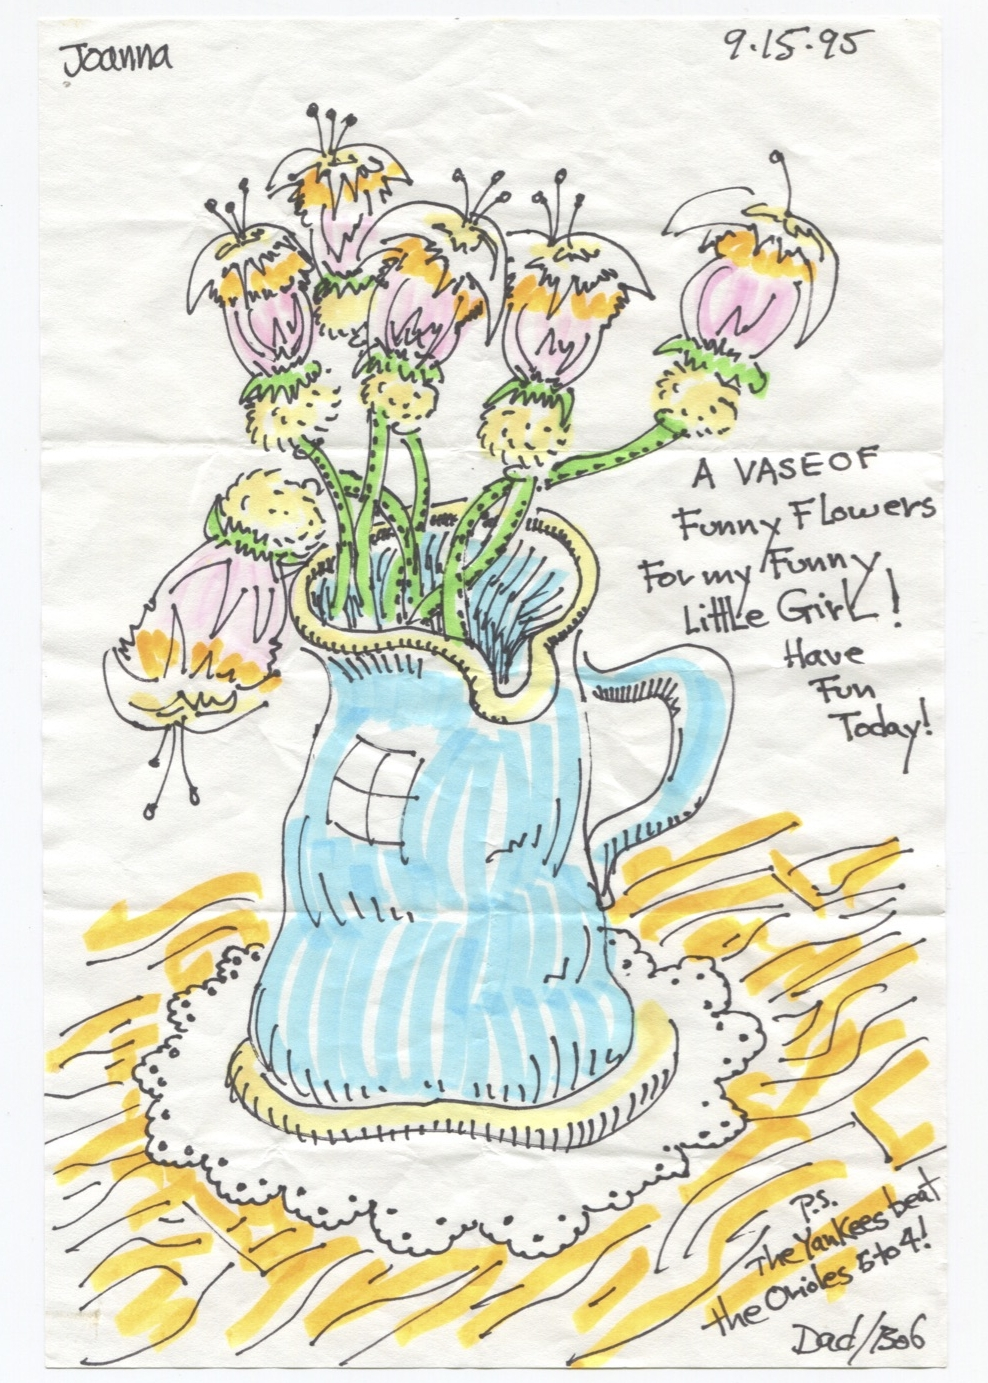 A vase of funny flowers for my funny little girl! Have fun today!